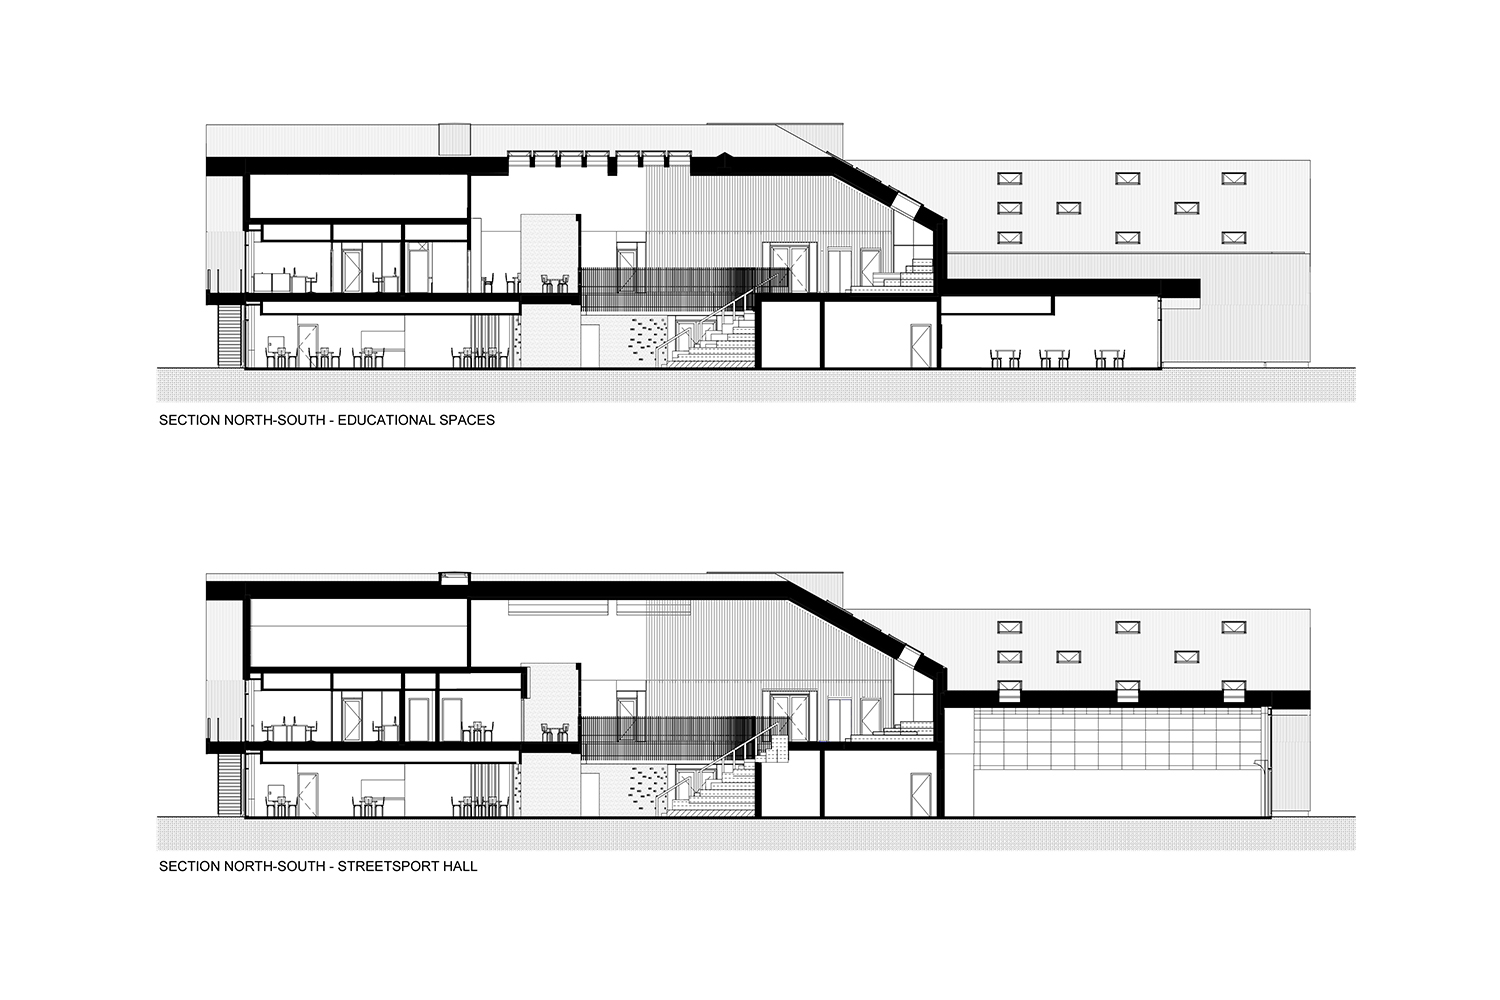 Sections_North-South C.F. Møller Architects}